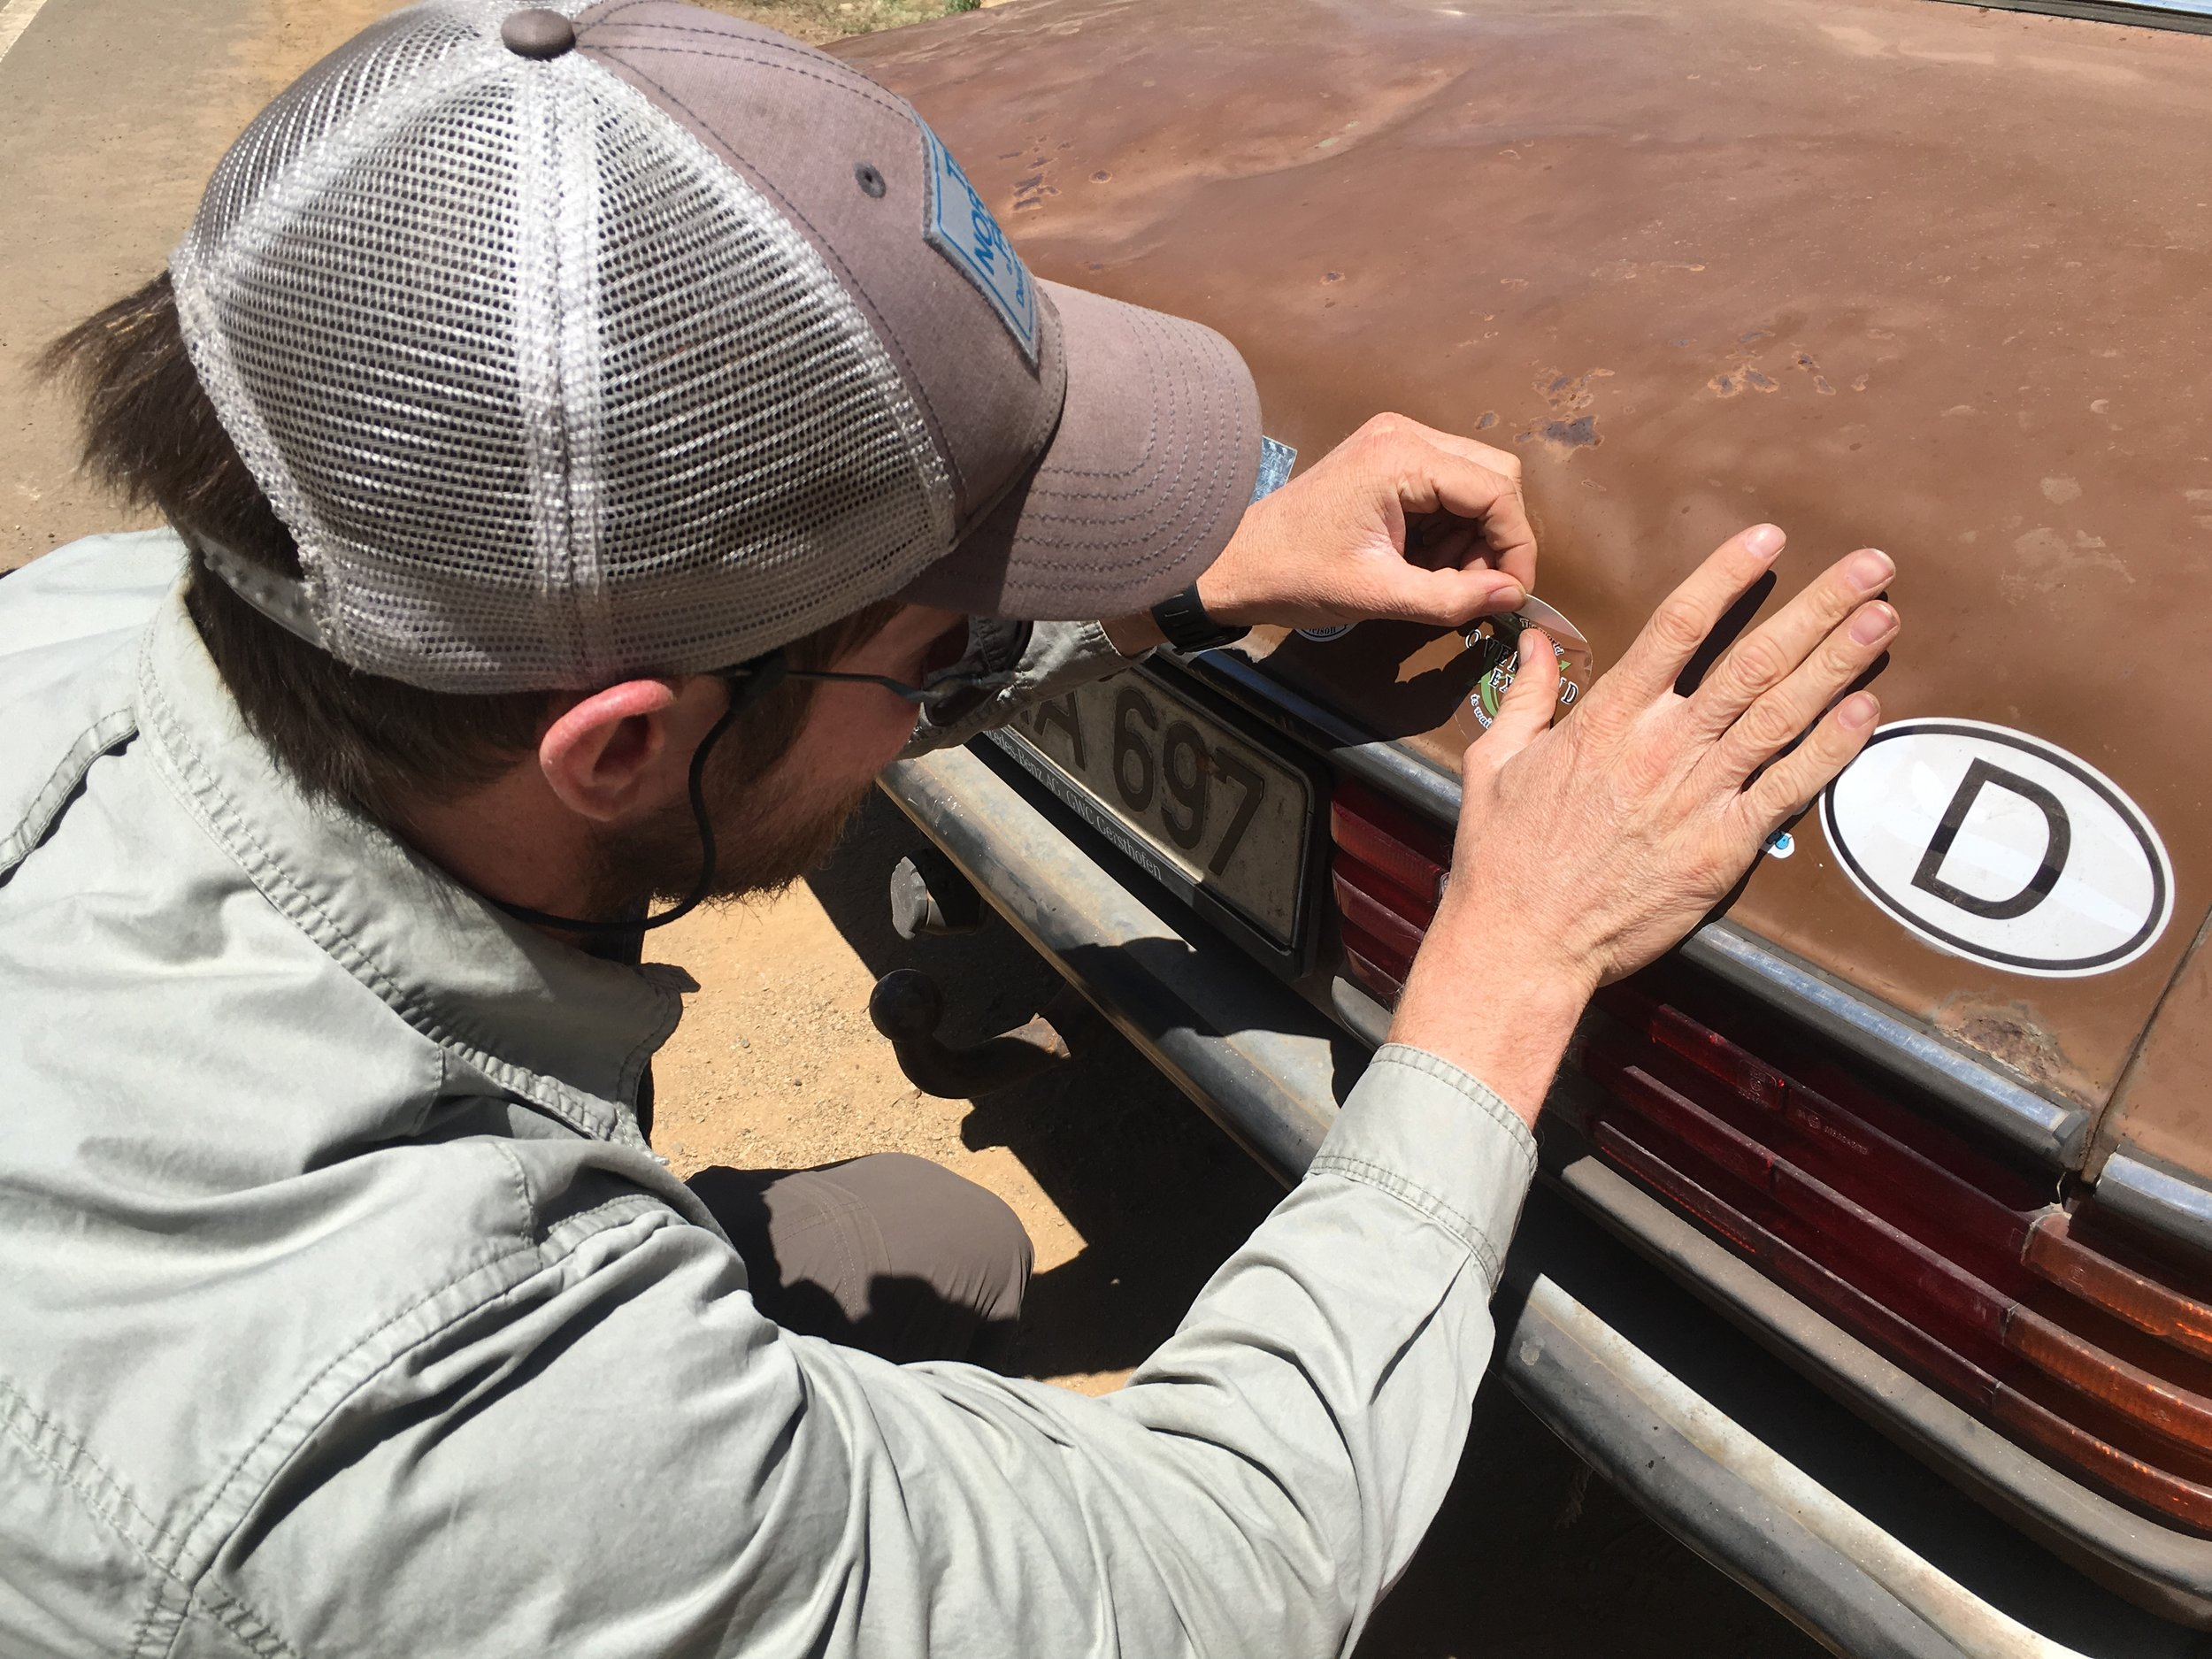 Isaac applies an Overland Expo decal at Blue's request. This will be the final addition before the Benz is entombed in a museum.